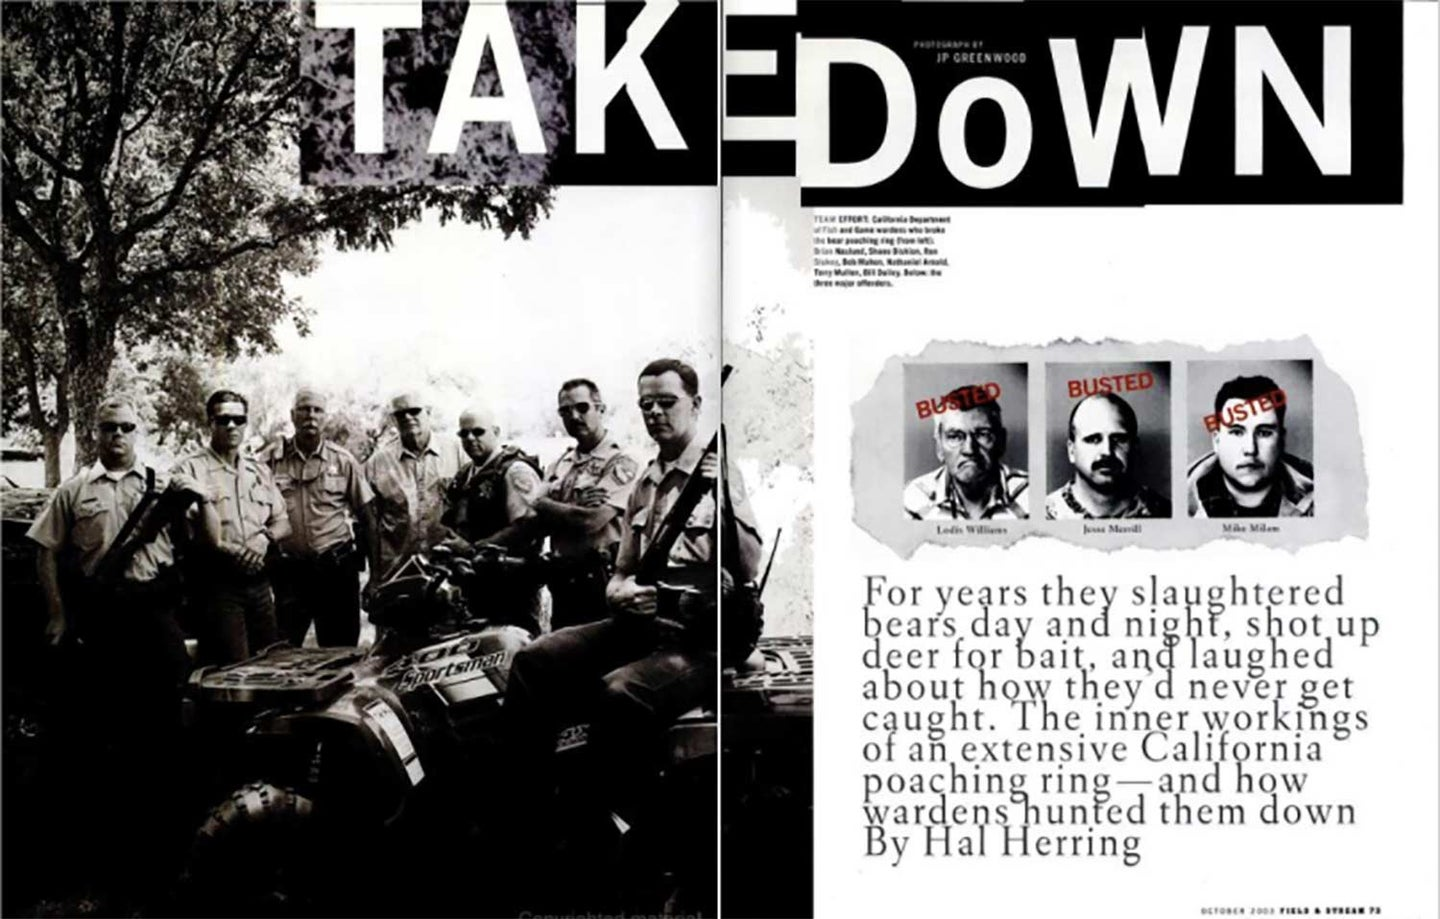 A clipping from Field & stream magazine with the headline: